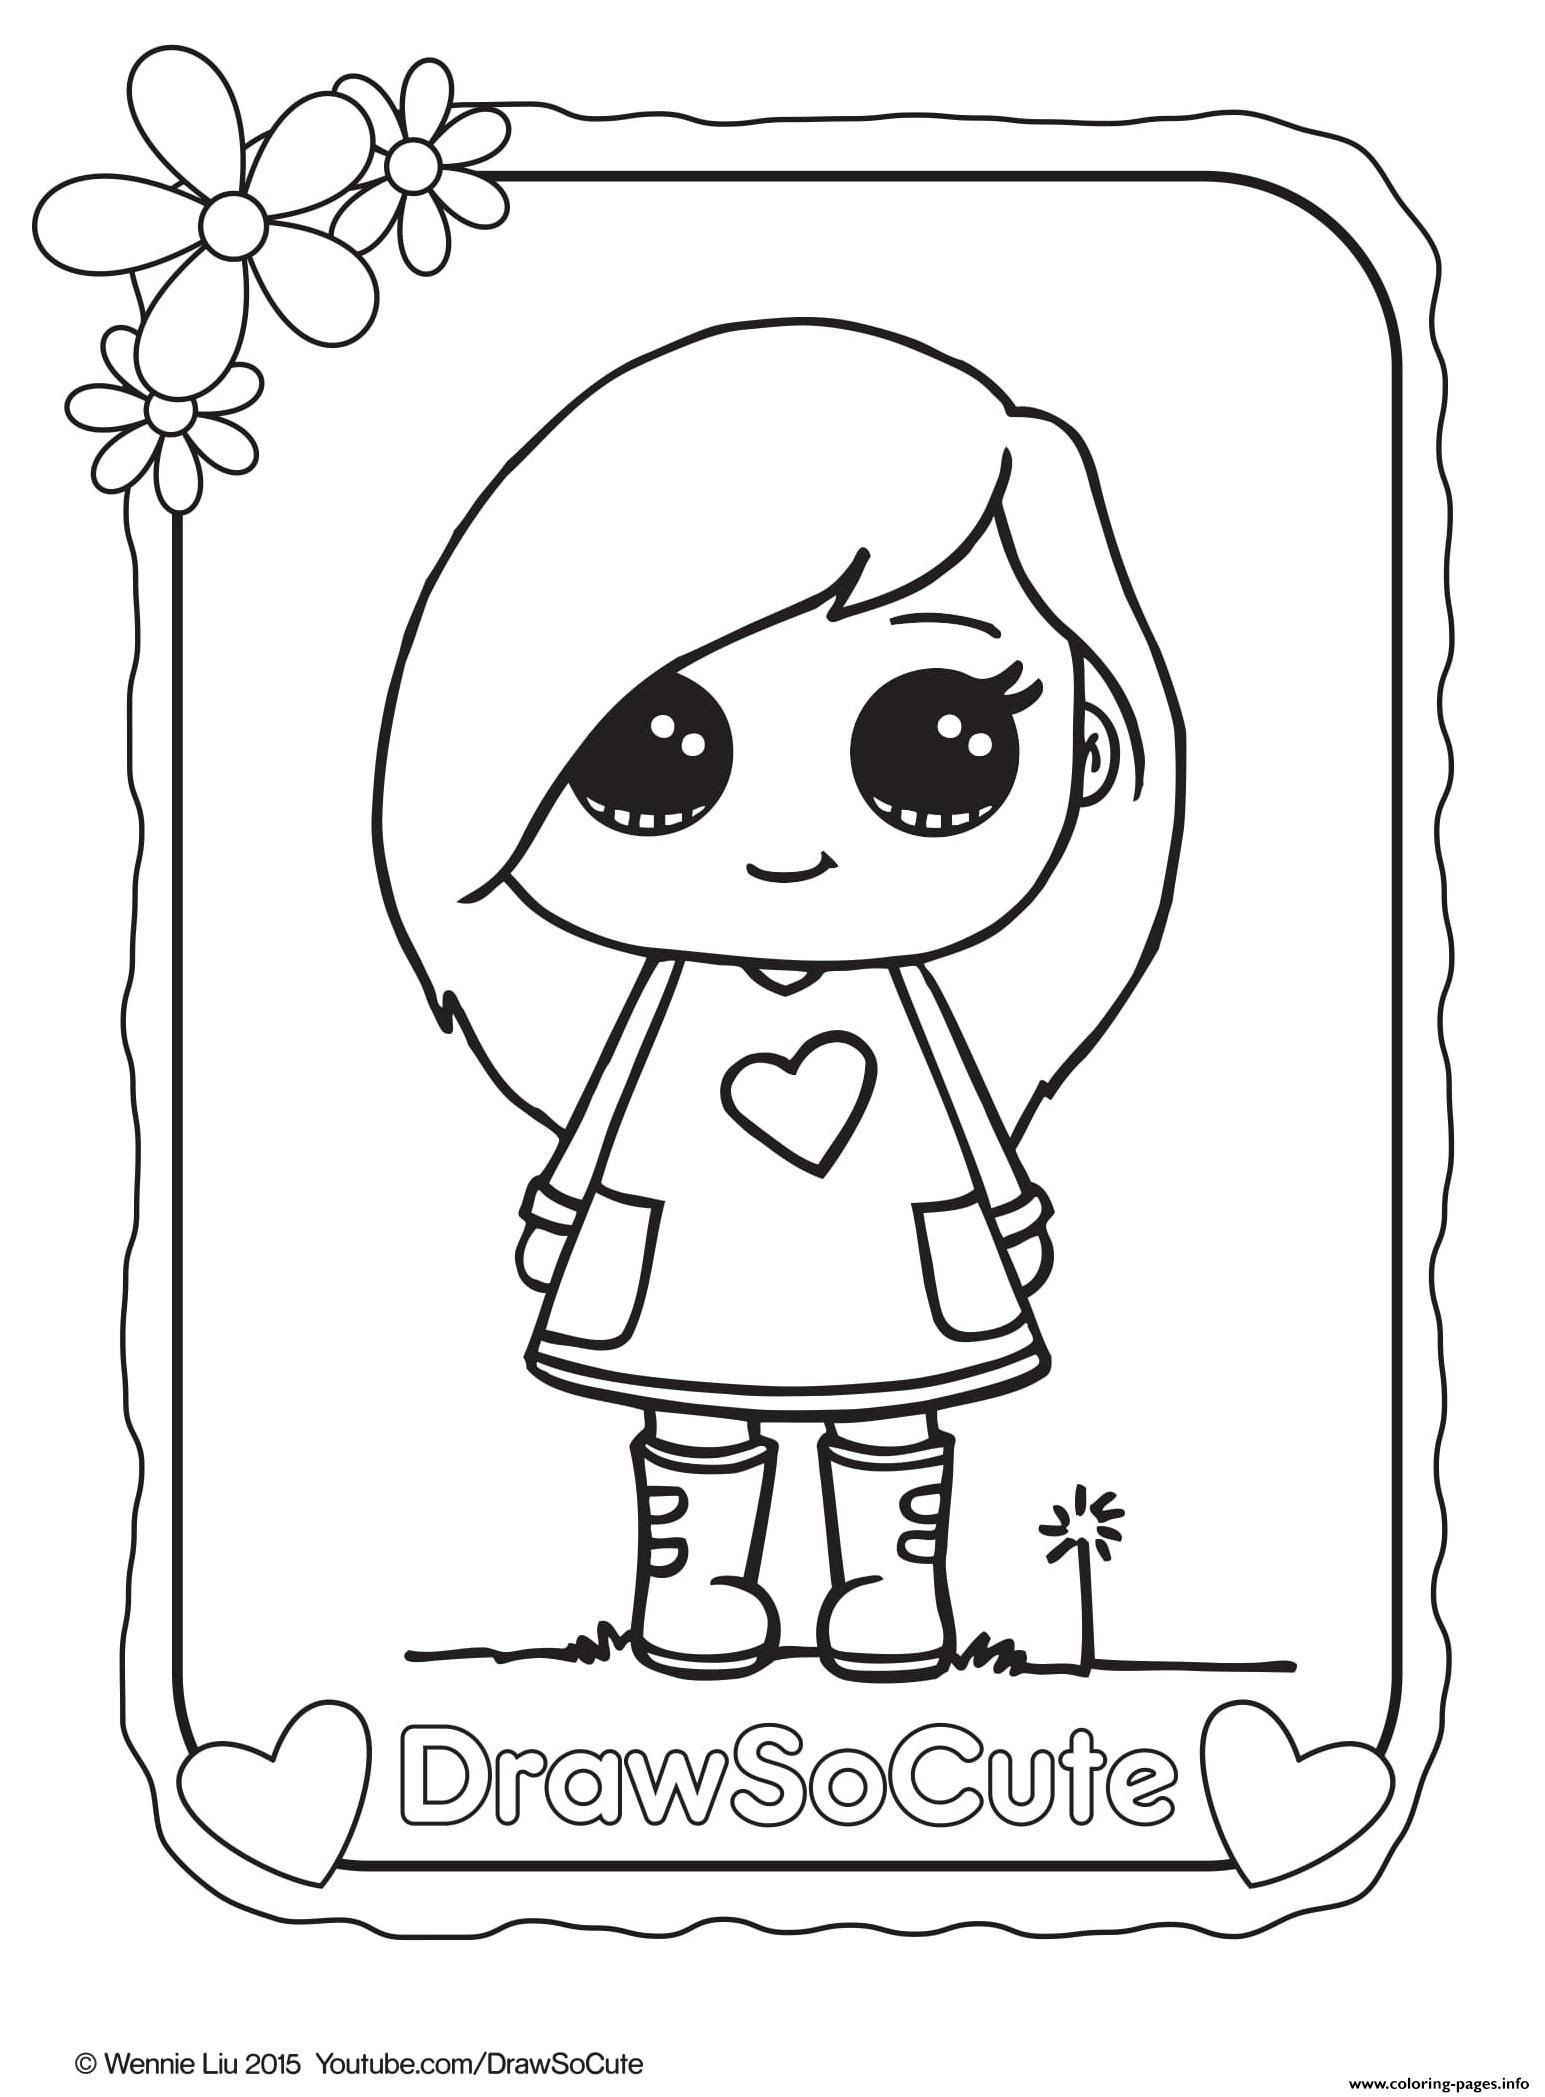 Cute Coloring Pages For Kids Coloring Pages Sophie Draw So Cute Coloring Printable Cute Coloring Pages Cute Drawings Coloring Books